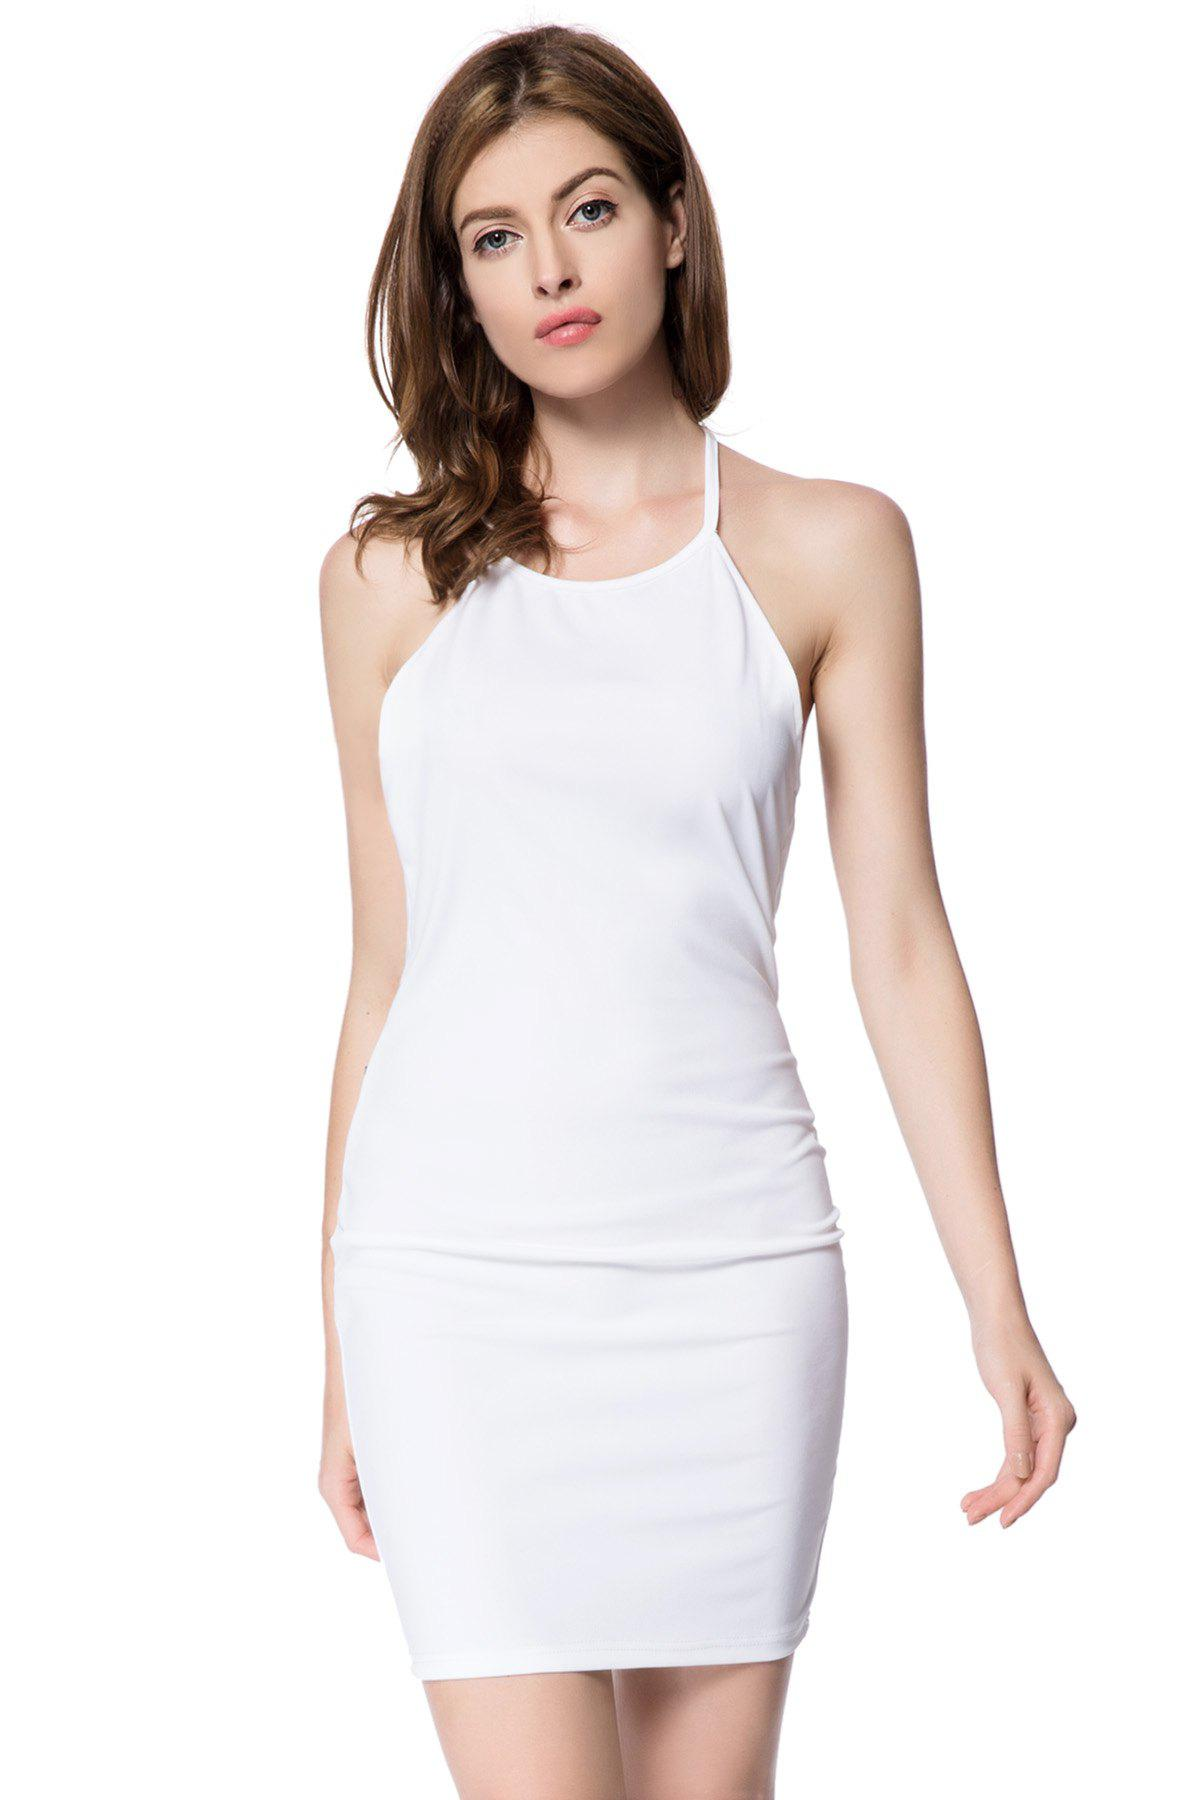 Sexy Scoop Neck Sleeveless Bodycon Backless Women's Dress